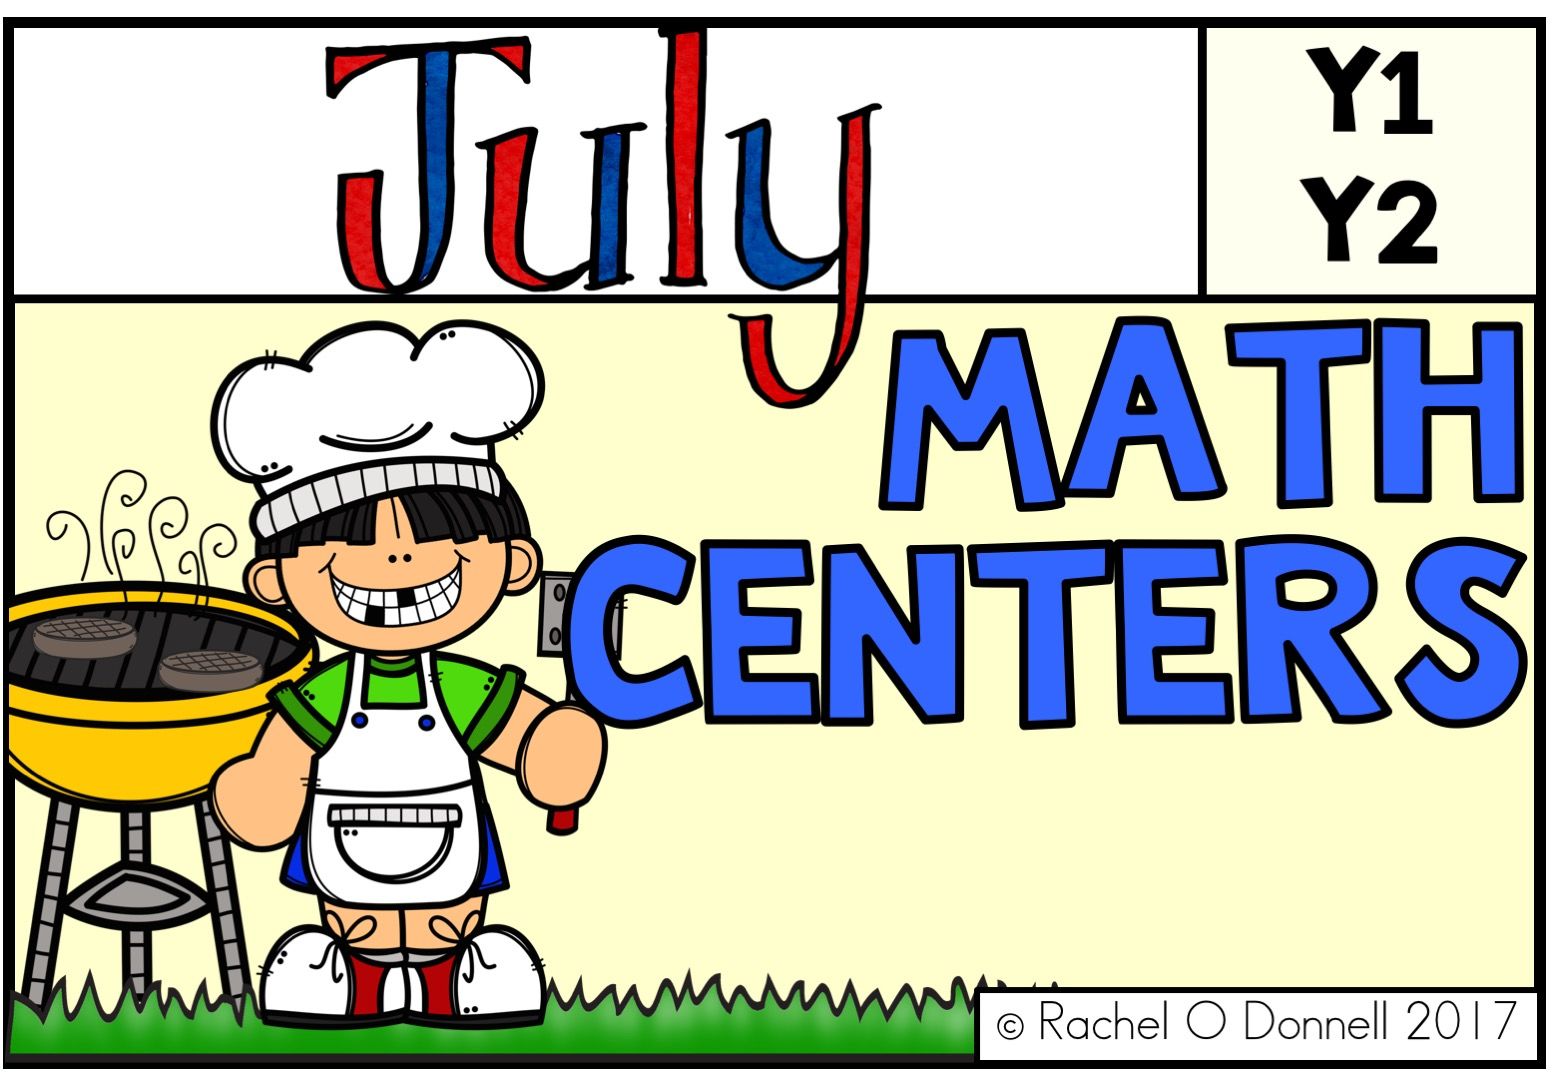 July maths Centers Year 1 Year 2